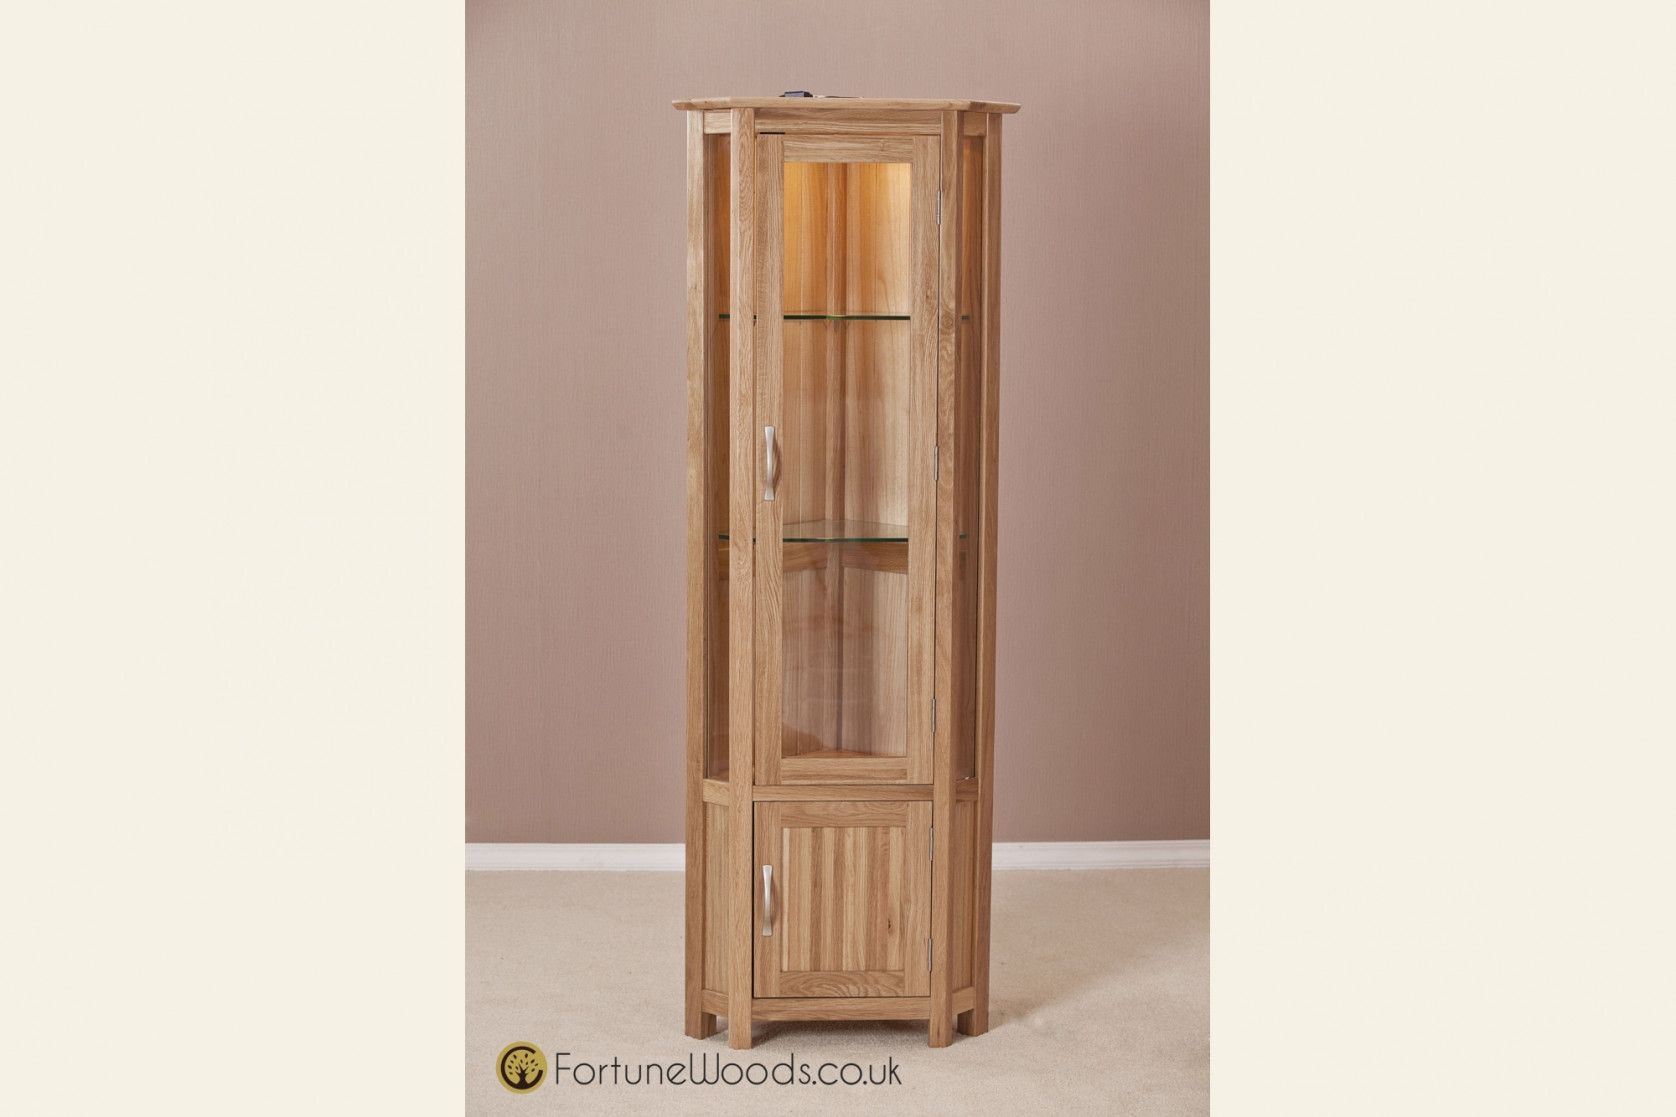 77 Oak Display Cabinets With Glass Doors Kitchen Decor Theme Ideas Check More At Http Ww Oak Display Cabinet Corner Display Cabinet Glass Cabinets Display